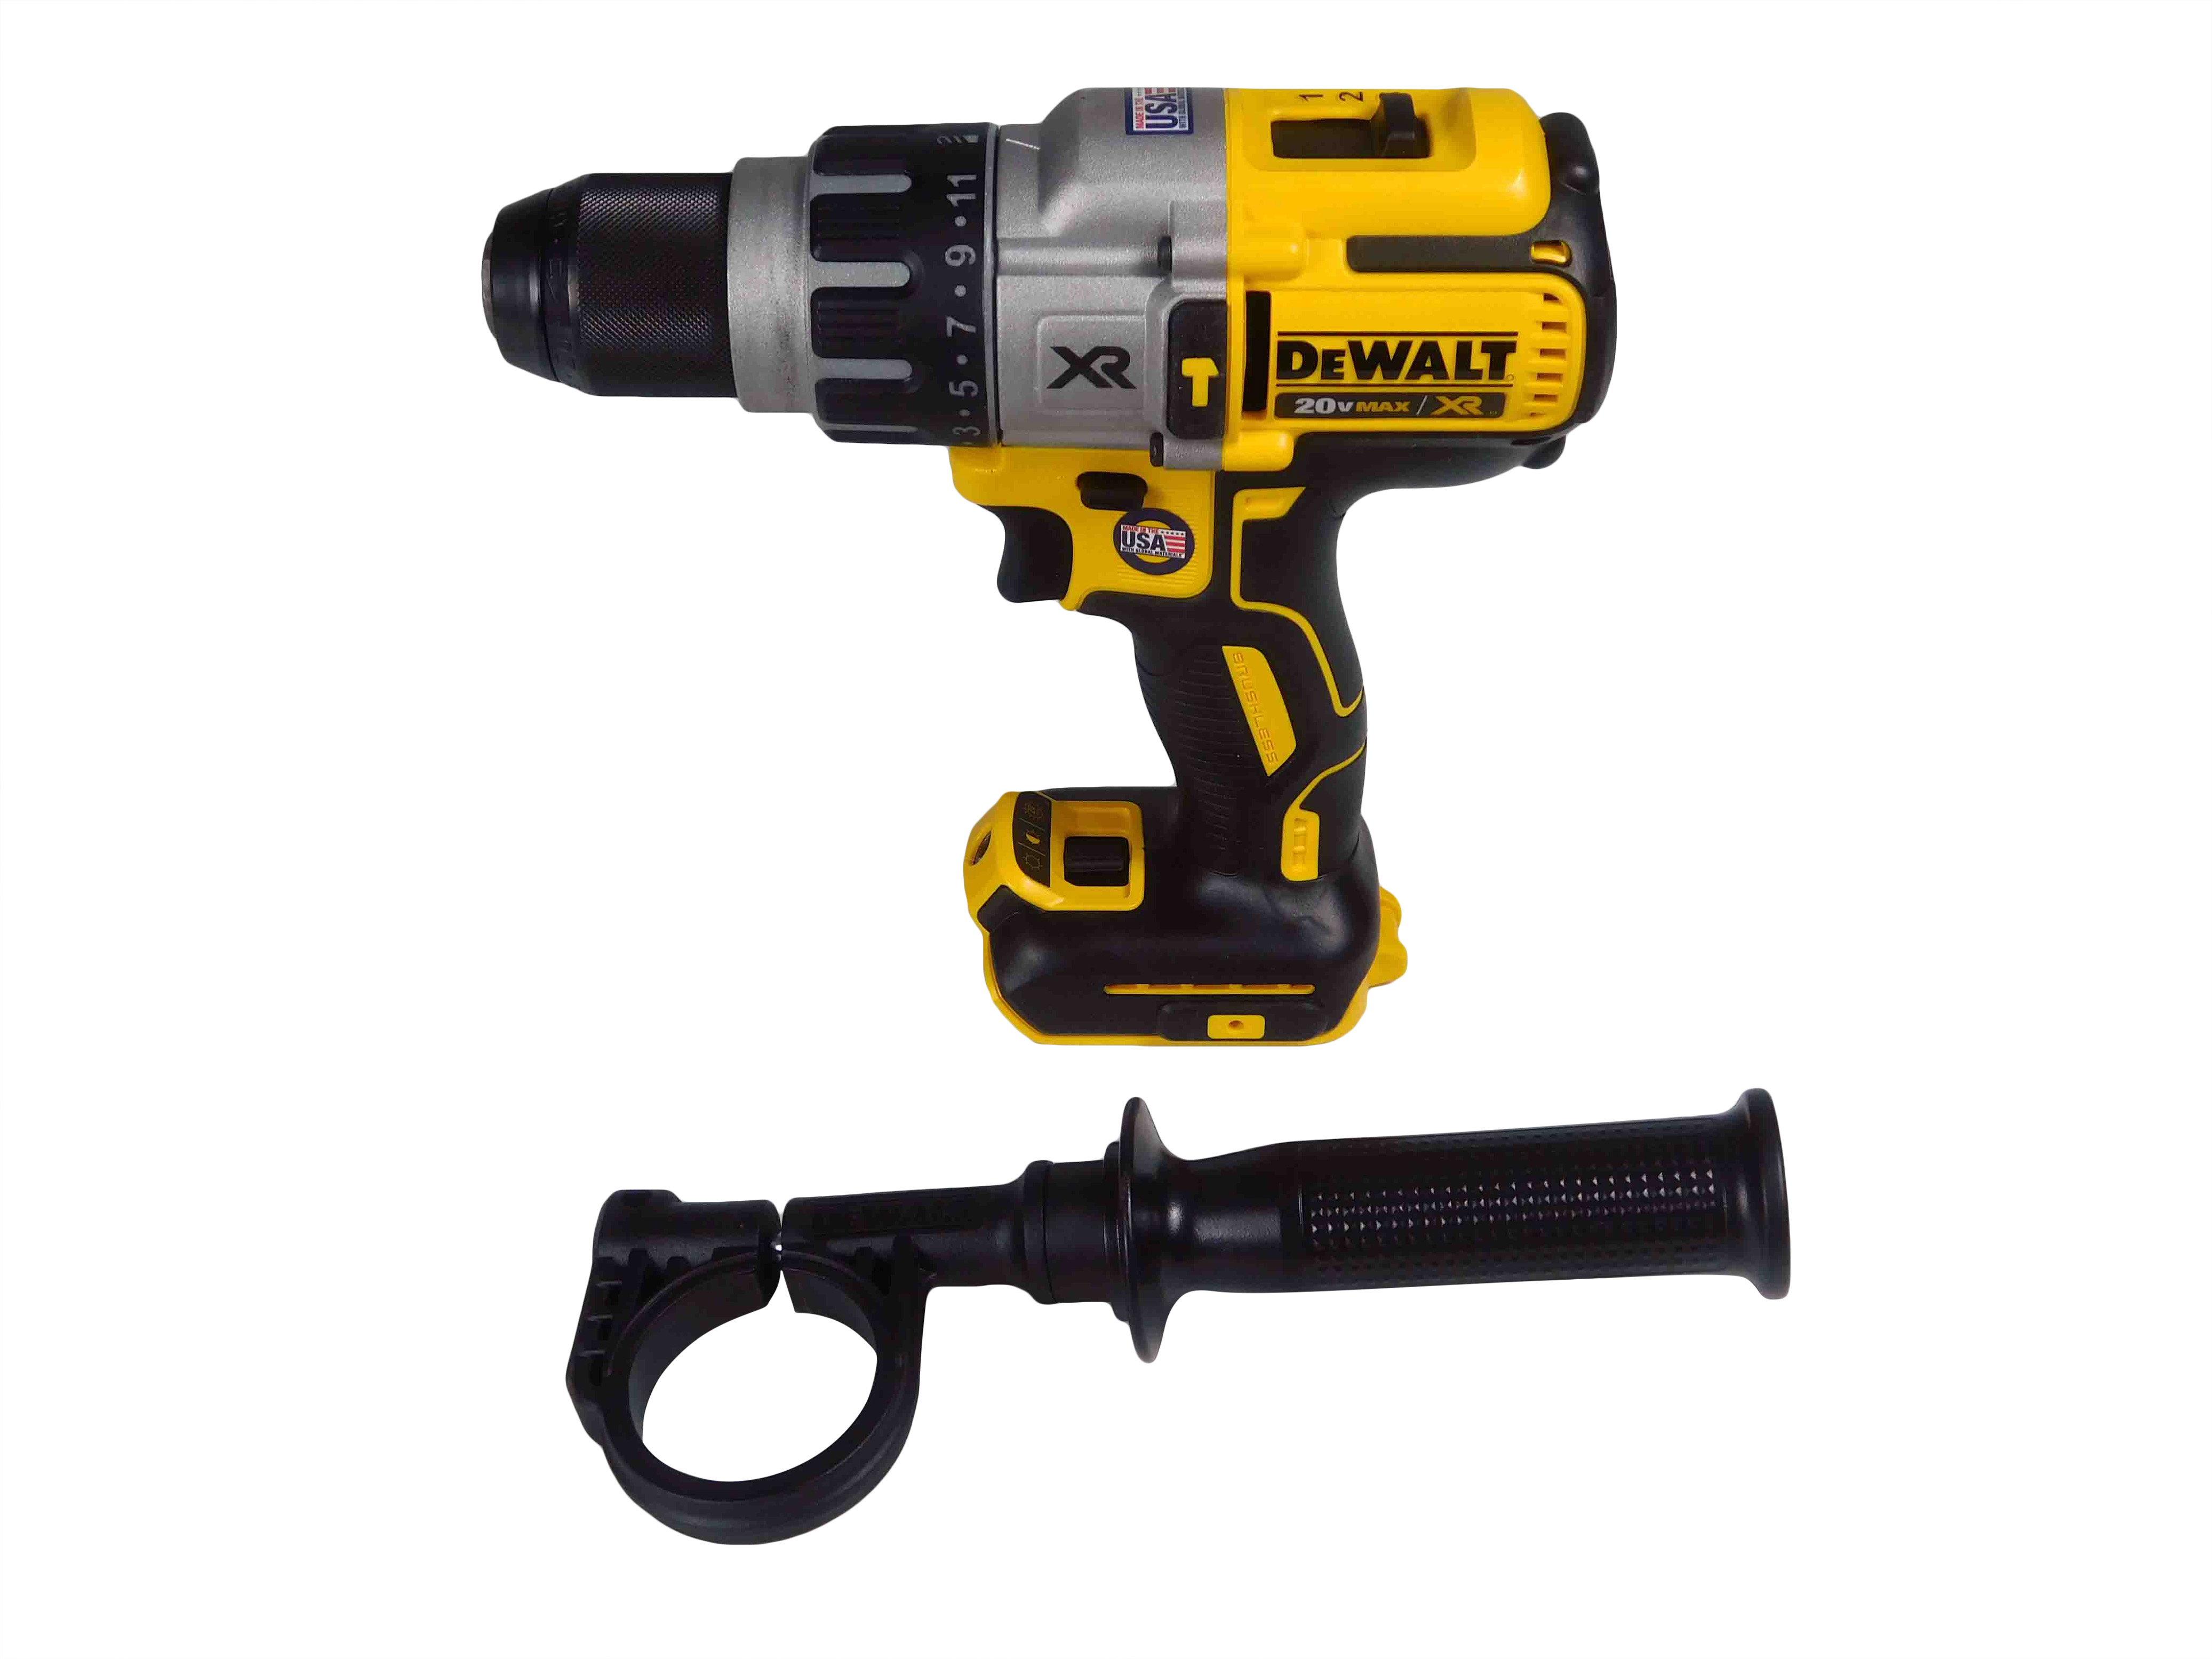 DEWALT-DCD996B-20V-MAX-Li-Ion-1-2inch-3-Speed-Brushless-Hammer-Drill-image-1